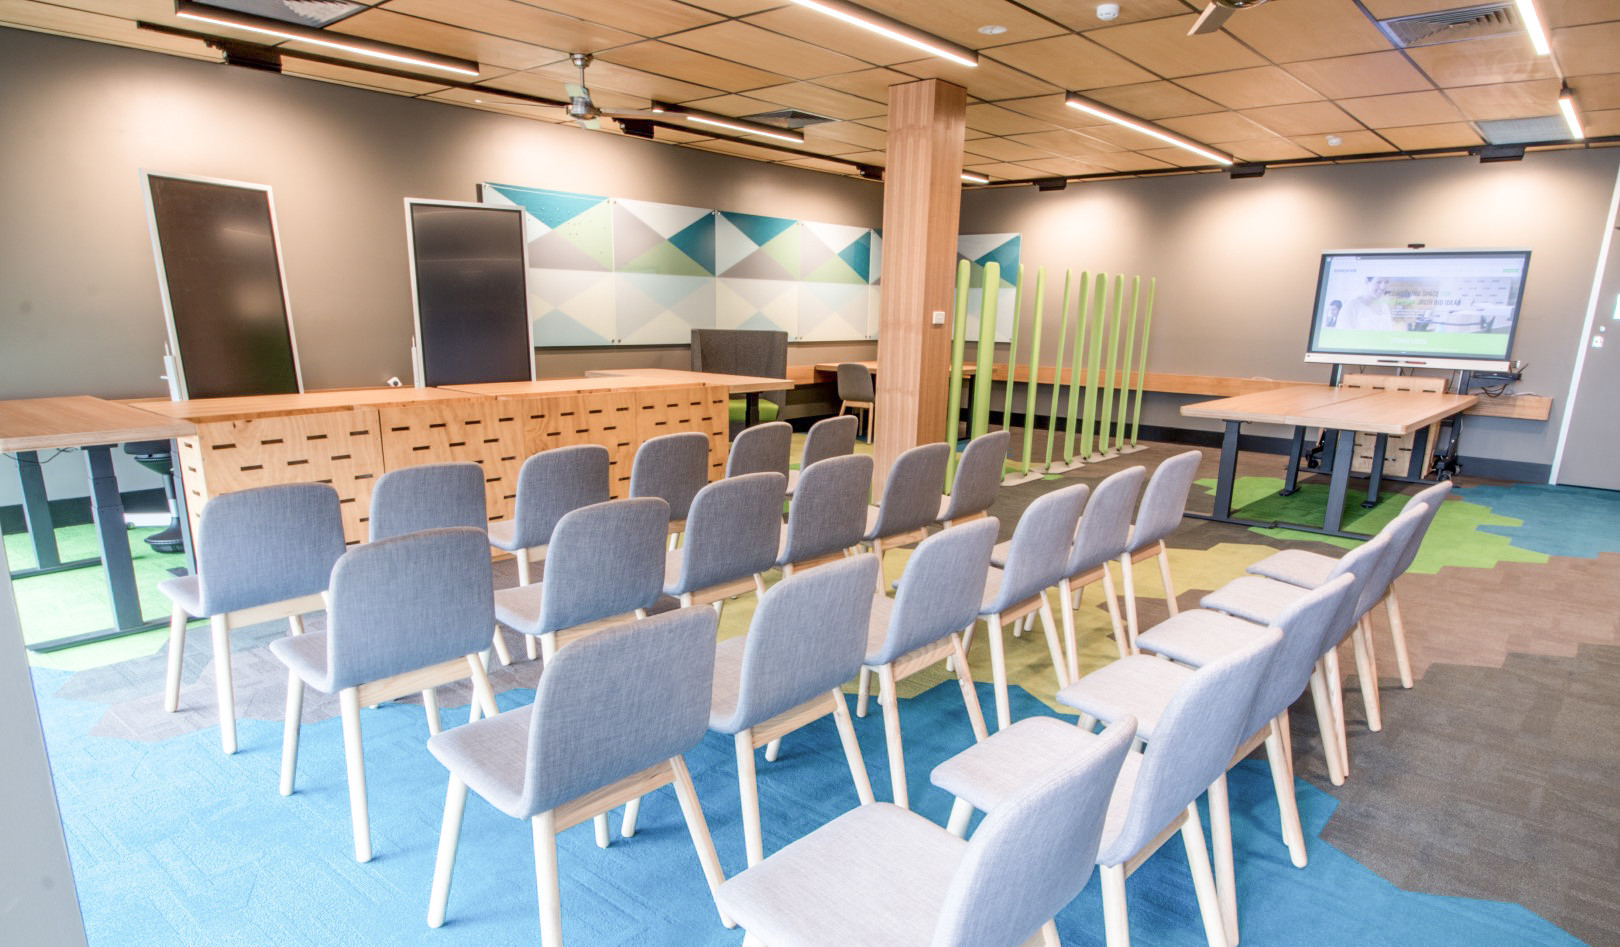 Collaboration space fit out